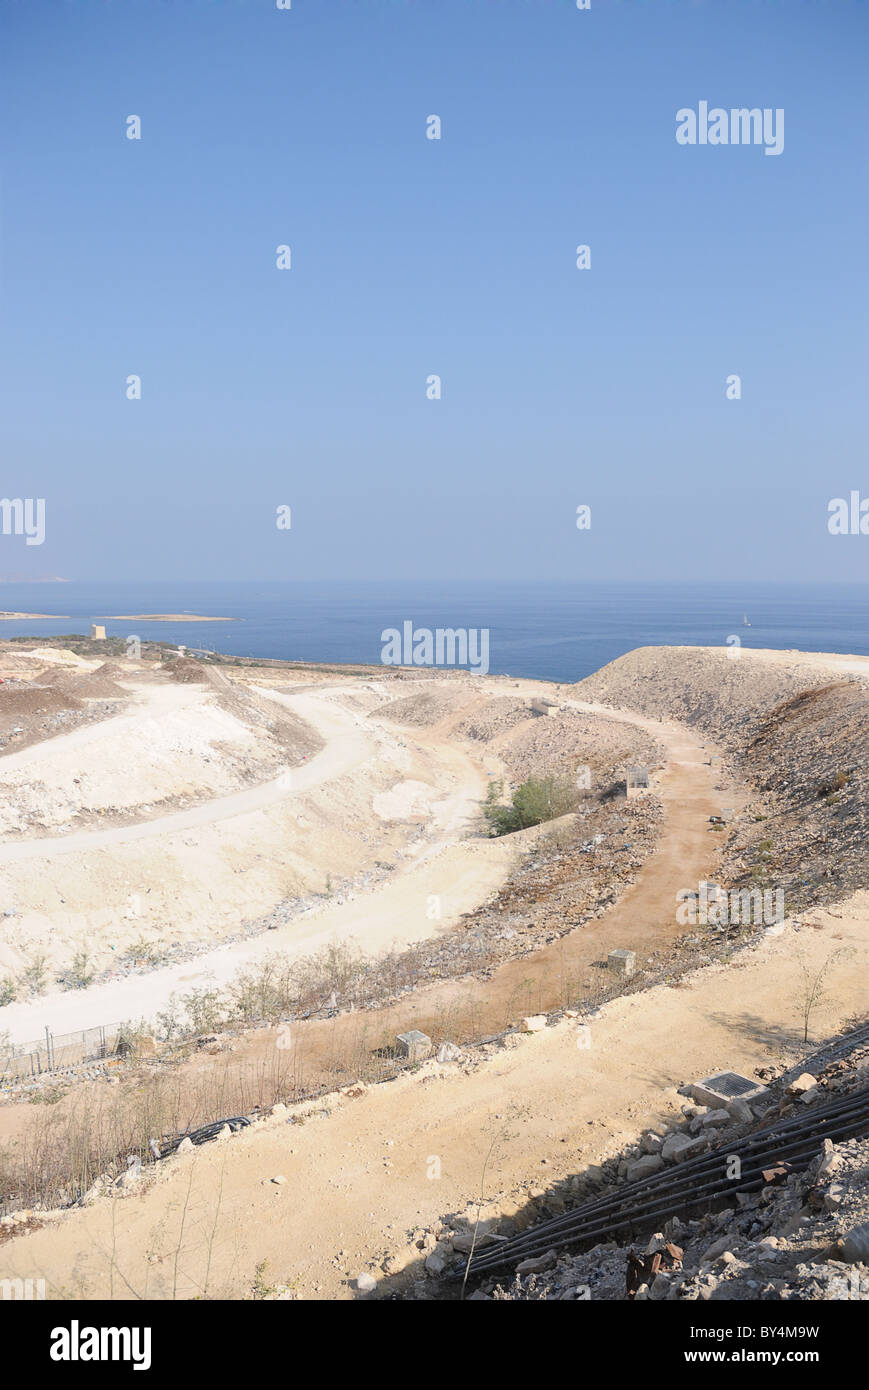 A section of a large stepped landfill in Malta - Stock Image